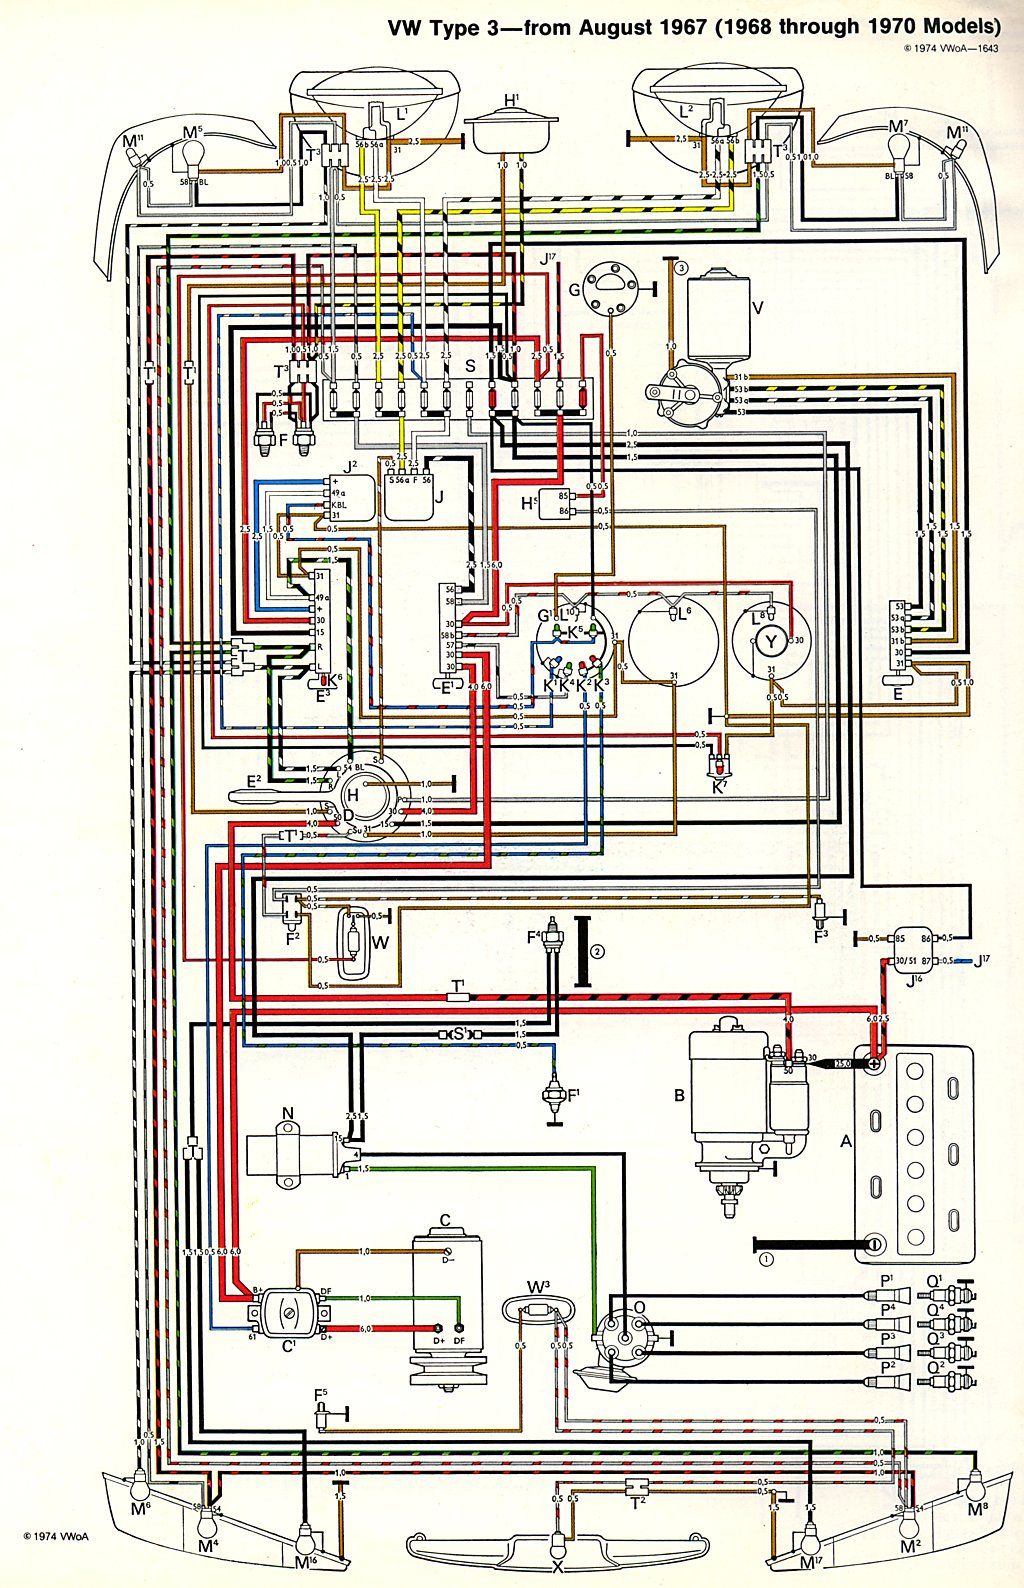 thesamba.com :: type 3 wiring diagrams 1968 vw bug wiring 1969 vw bug wiring harness